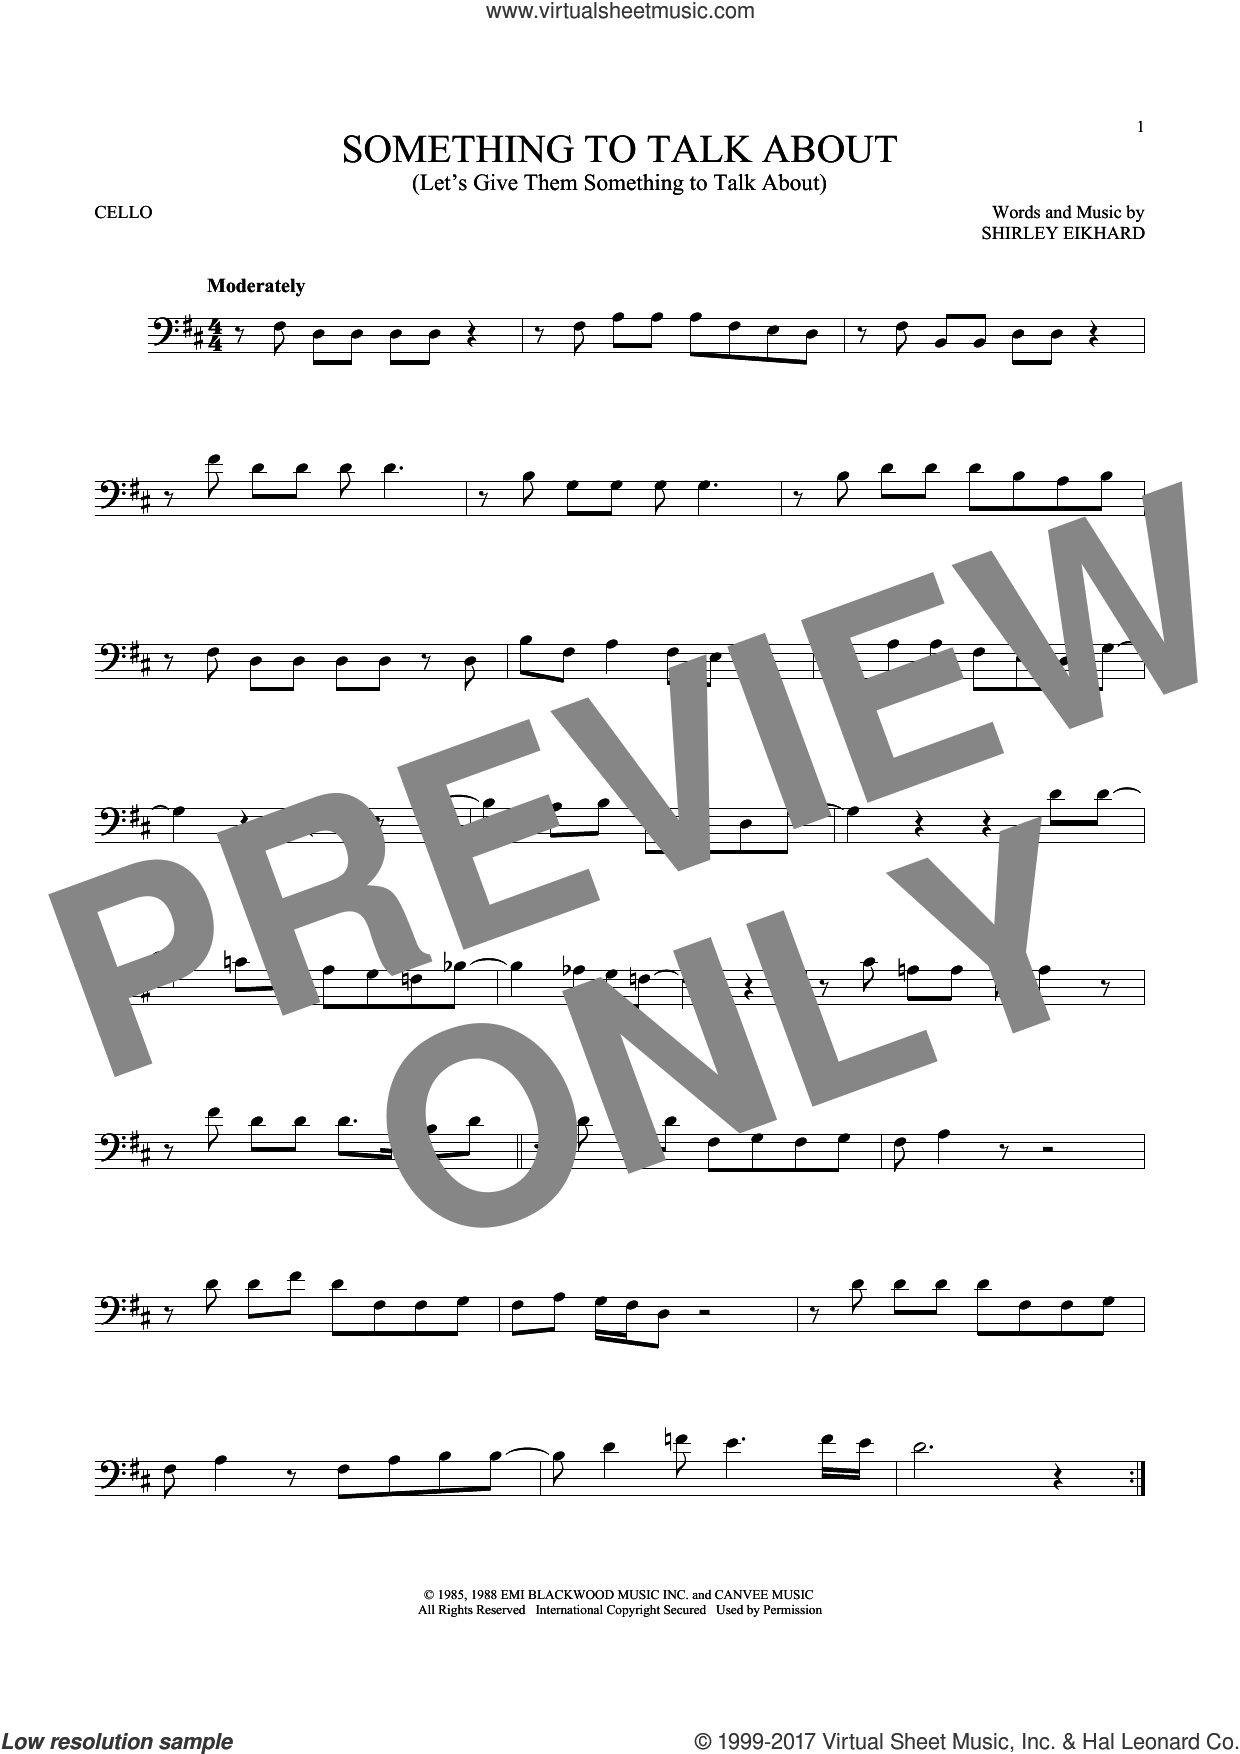 Something To Talk About (Let's Give Them Something To Talk About) sheet music for cello solo by Bonnie Raitt and Shirley Eikhard, intermediate skill level